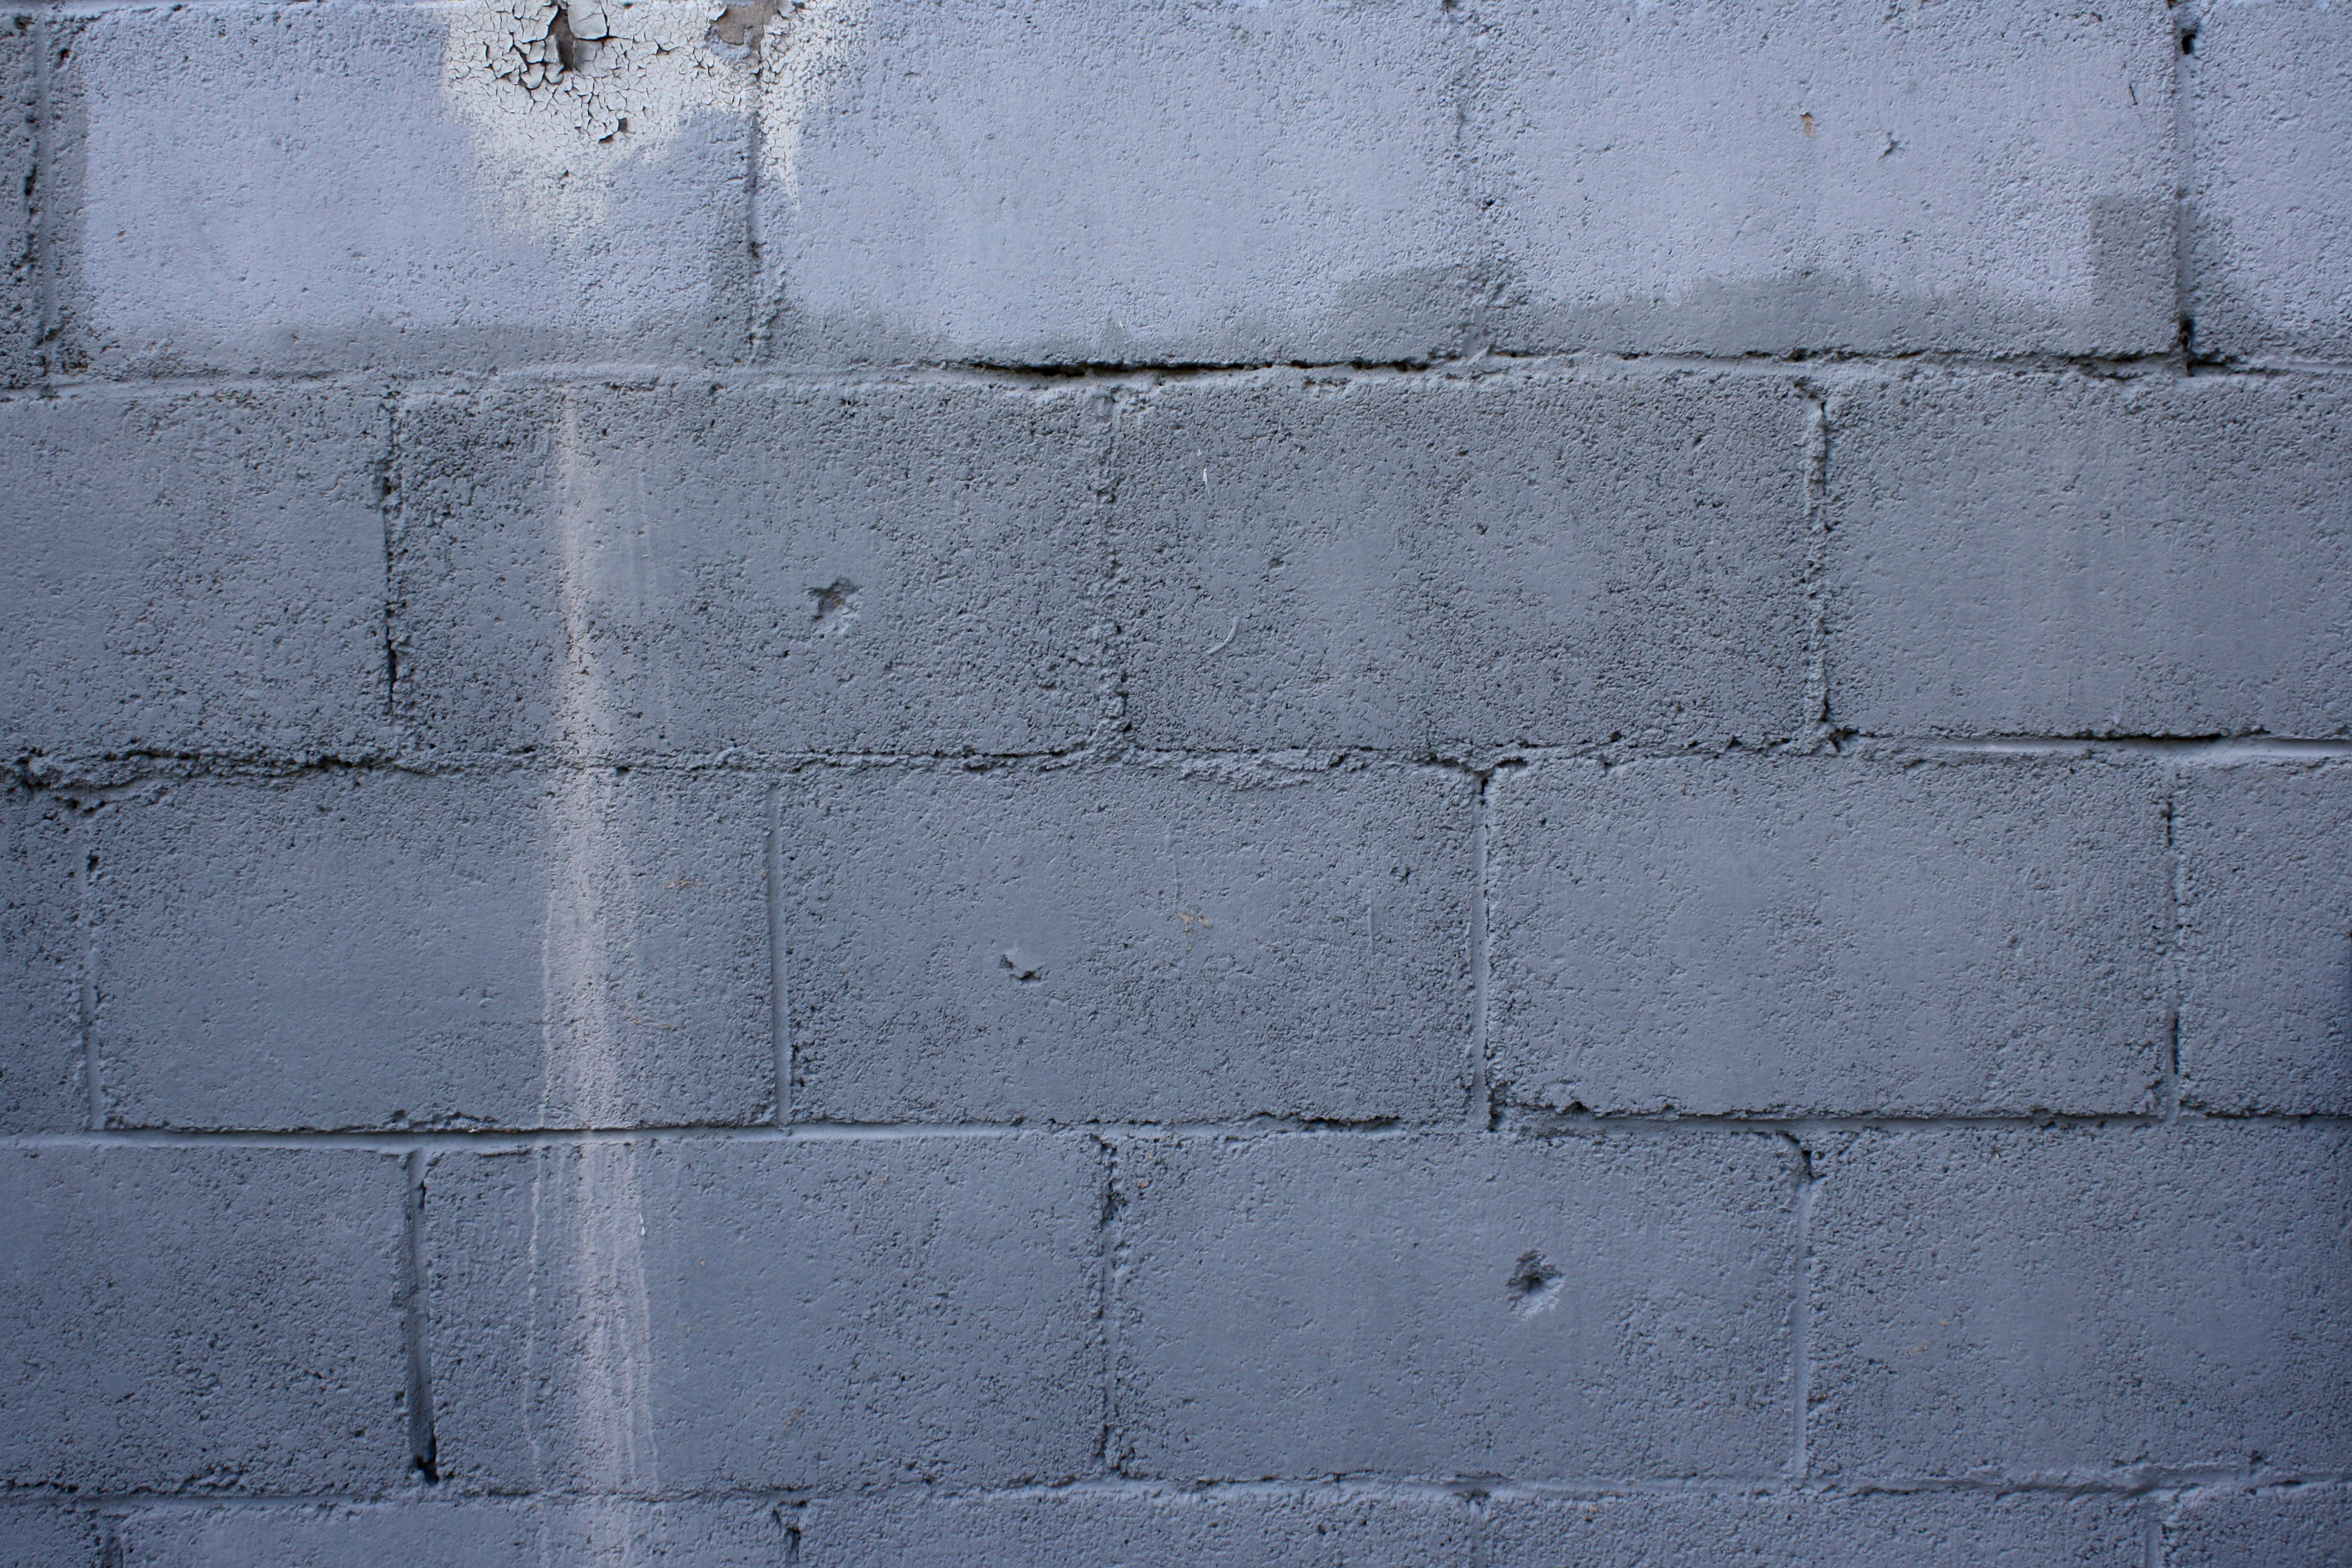 Image of: Old Cinder Block Wall Painted Gray Texture Picture Free Photograph Photos Public Domain